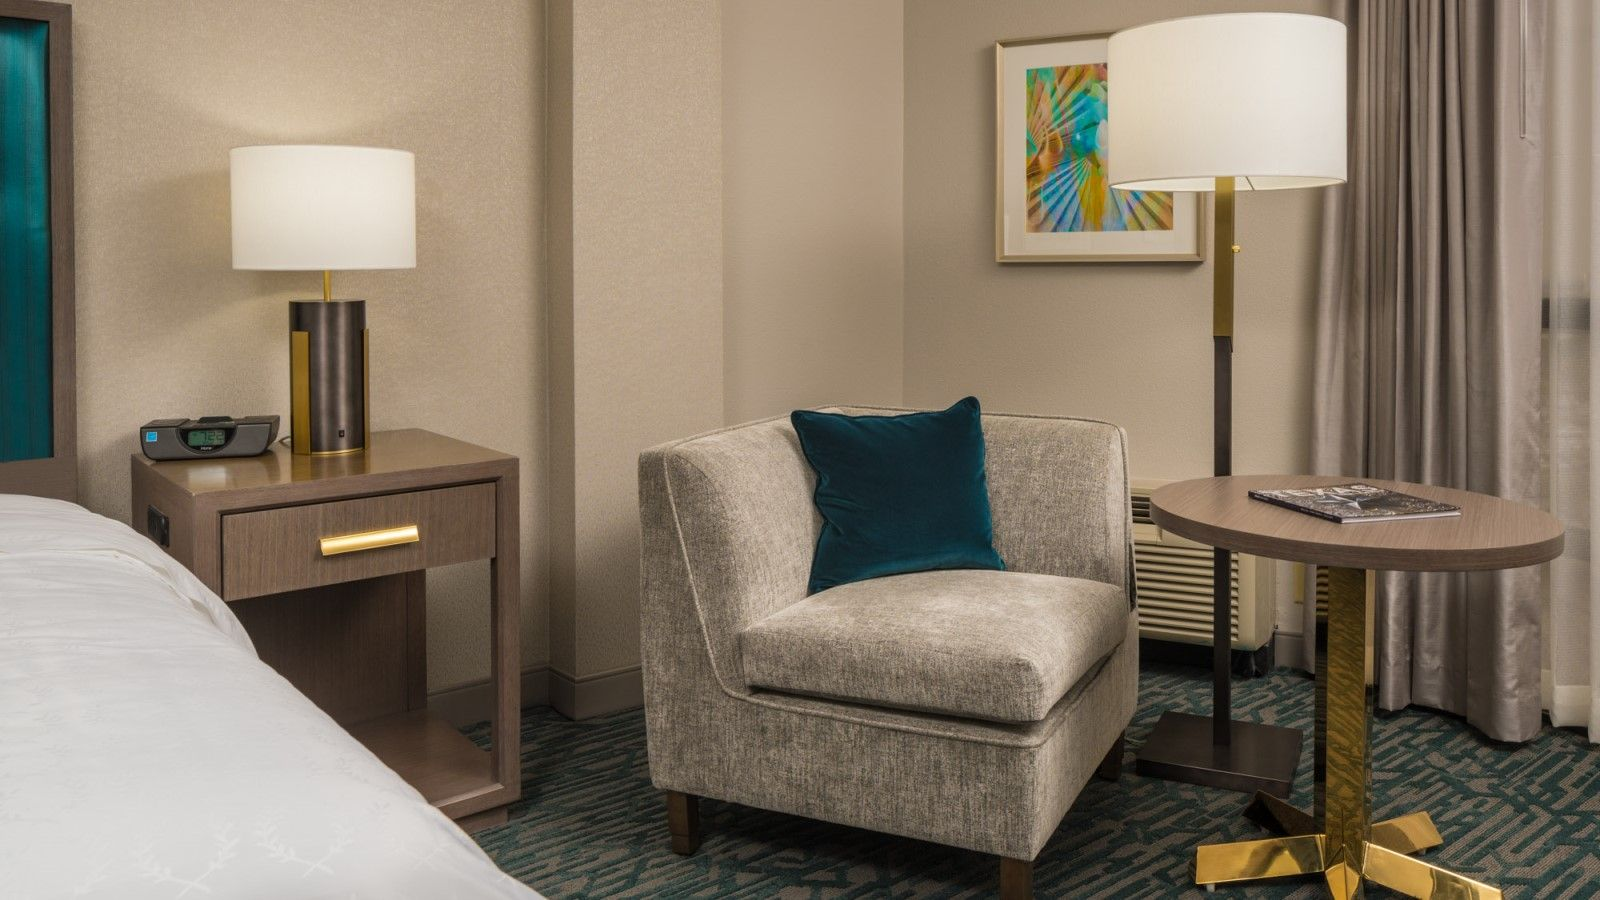 Sheraton Dallas Hotel by the Galleria - Renovation